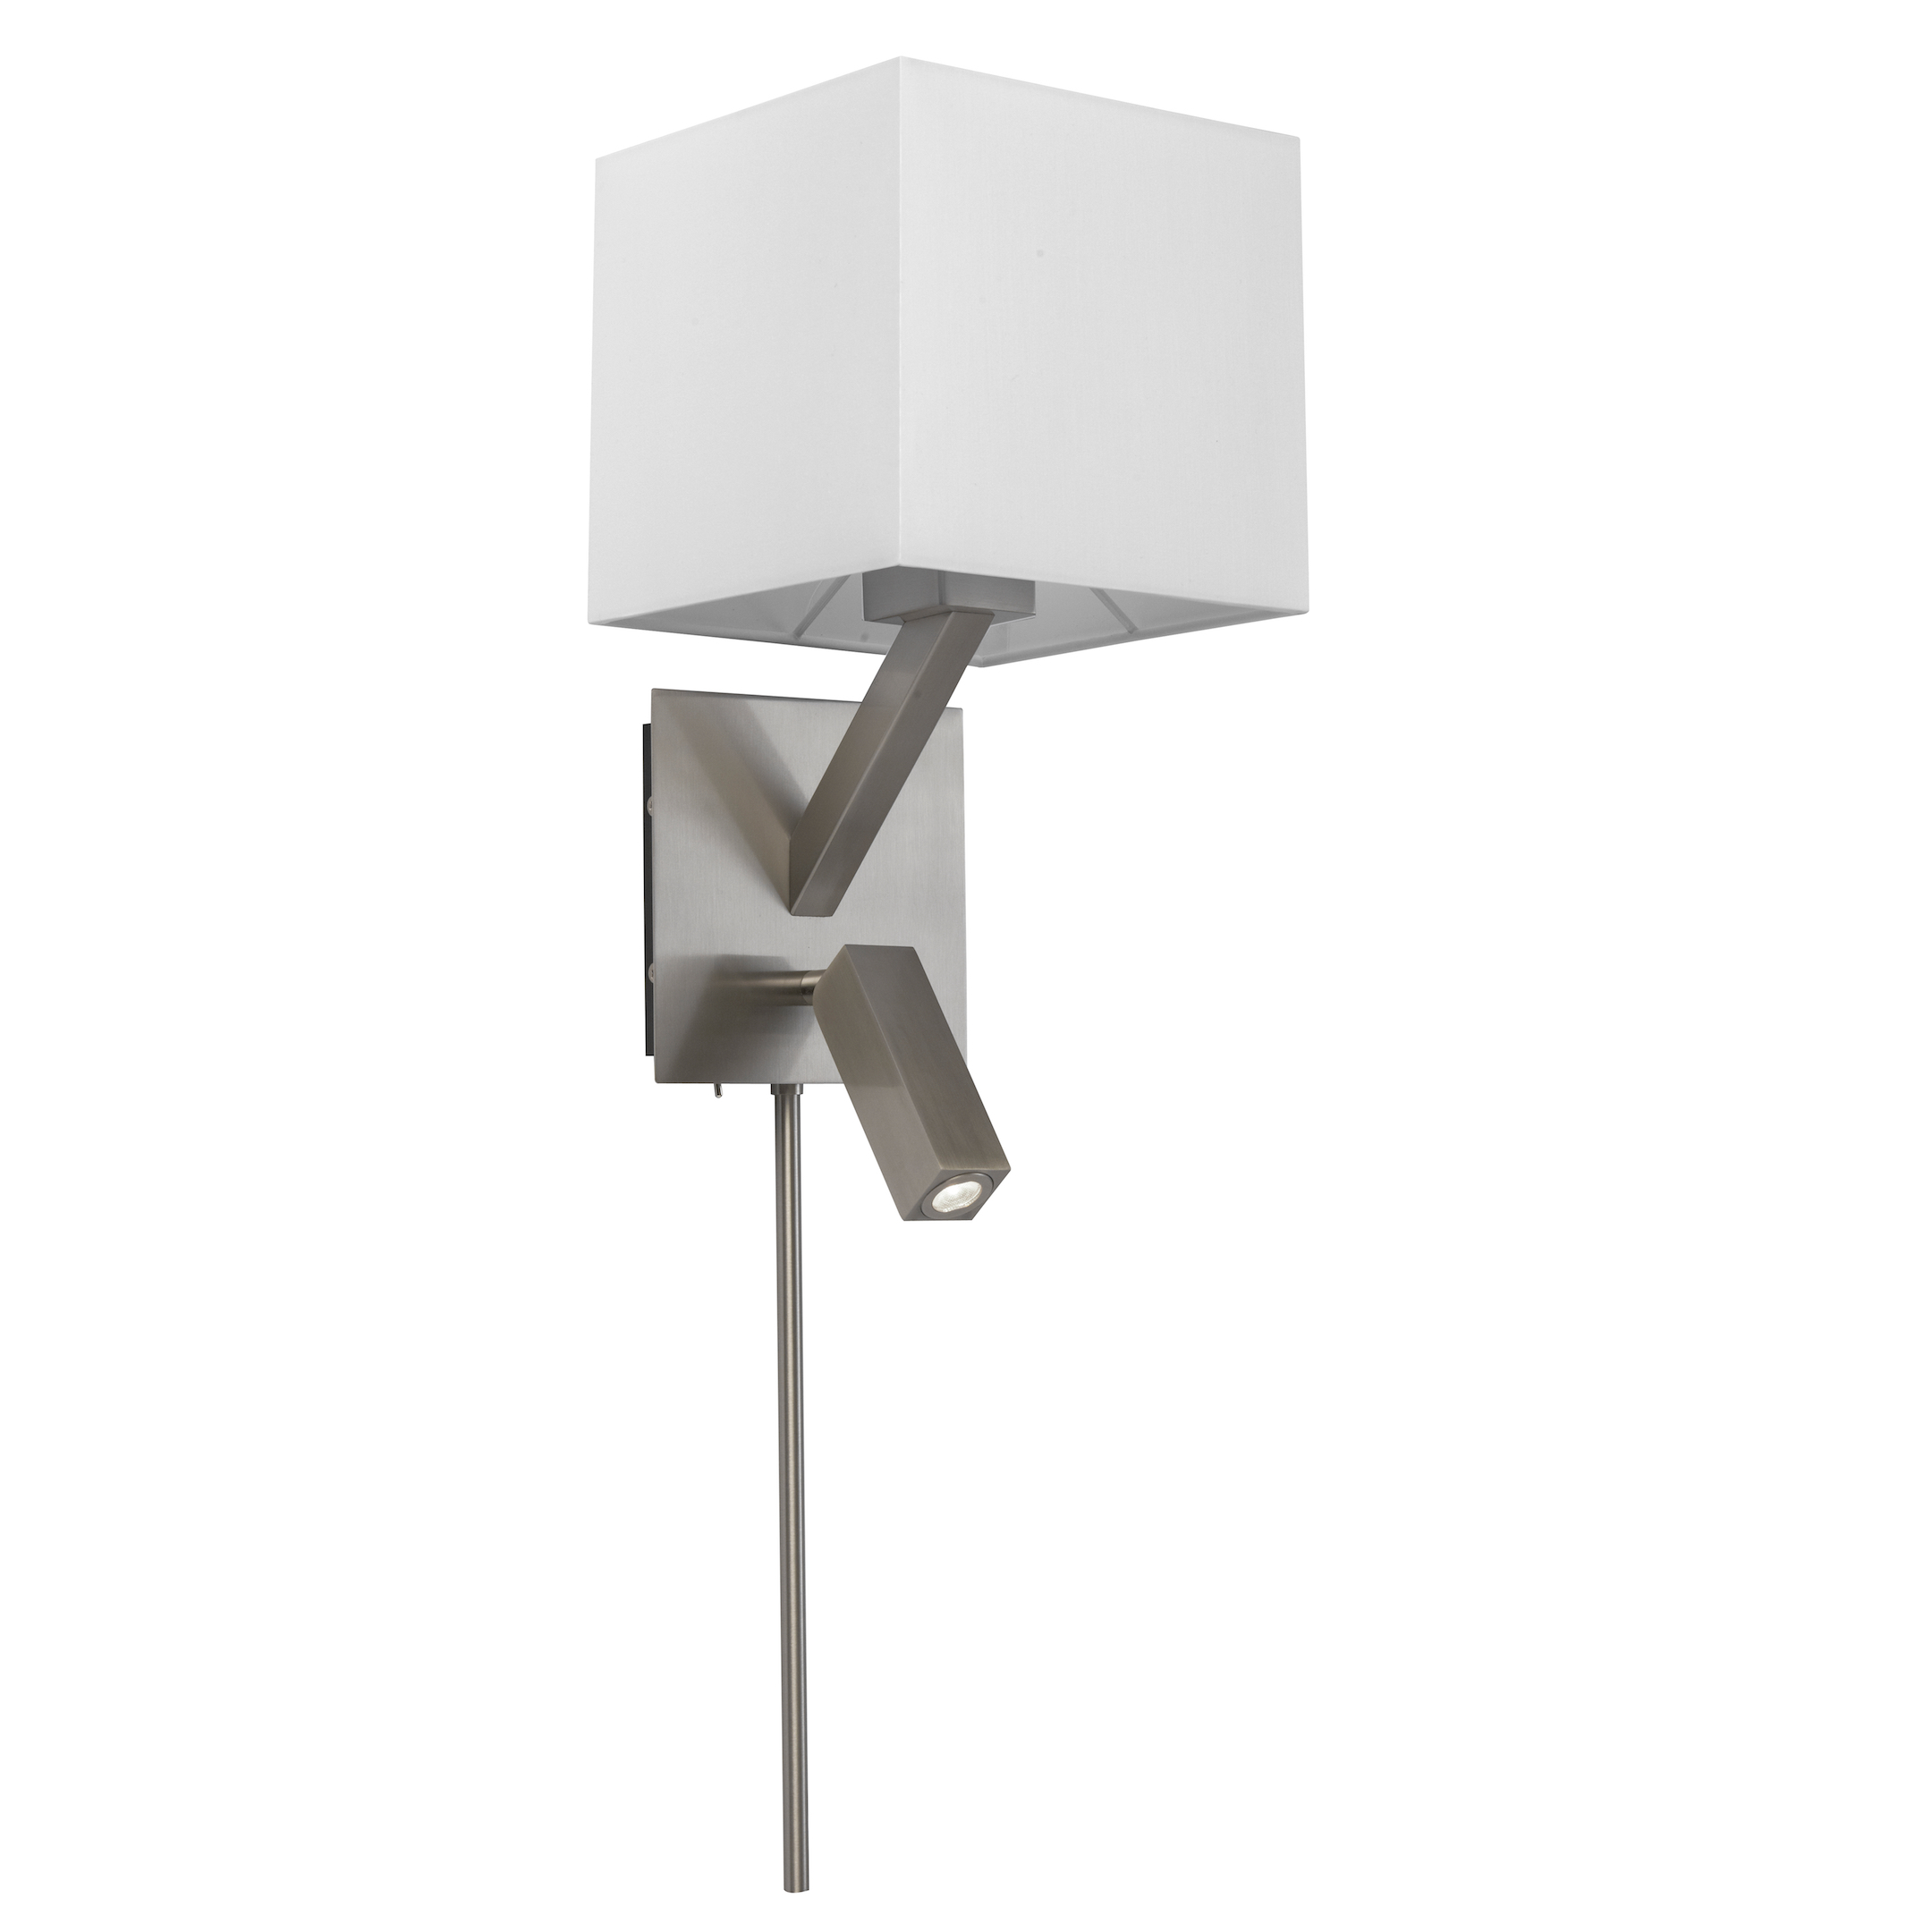 Wall Sconce Lighting / lecture Modern Dainolite DLED496-SC